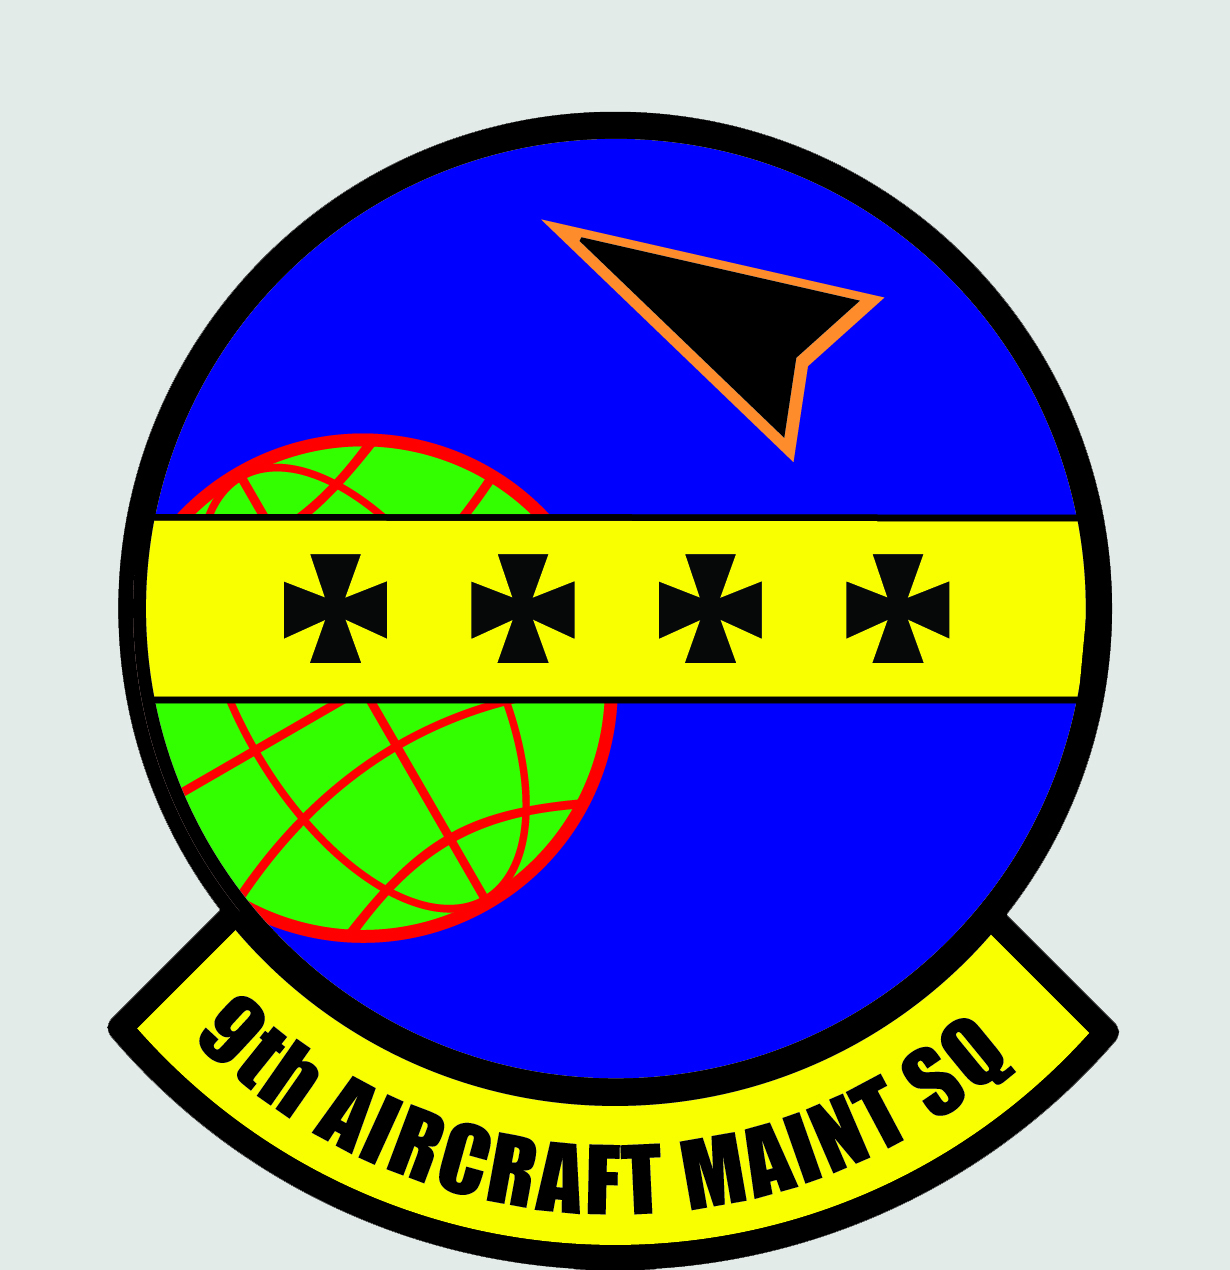 9th Aircraft Maintenance Squadron